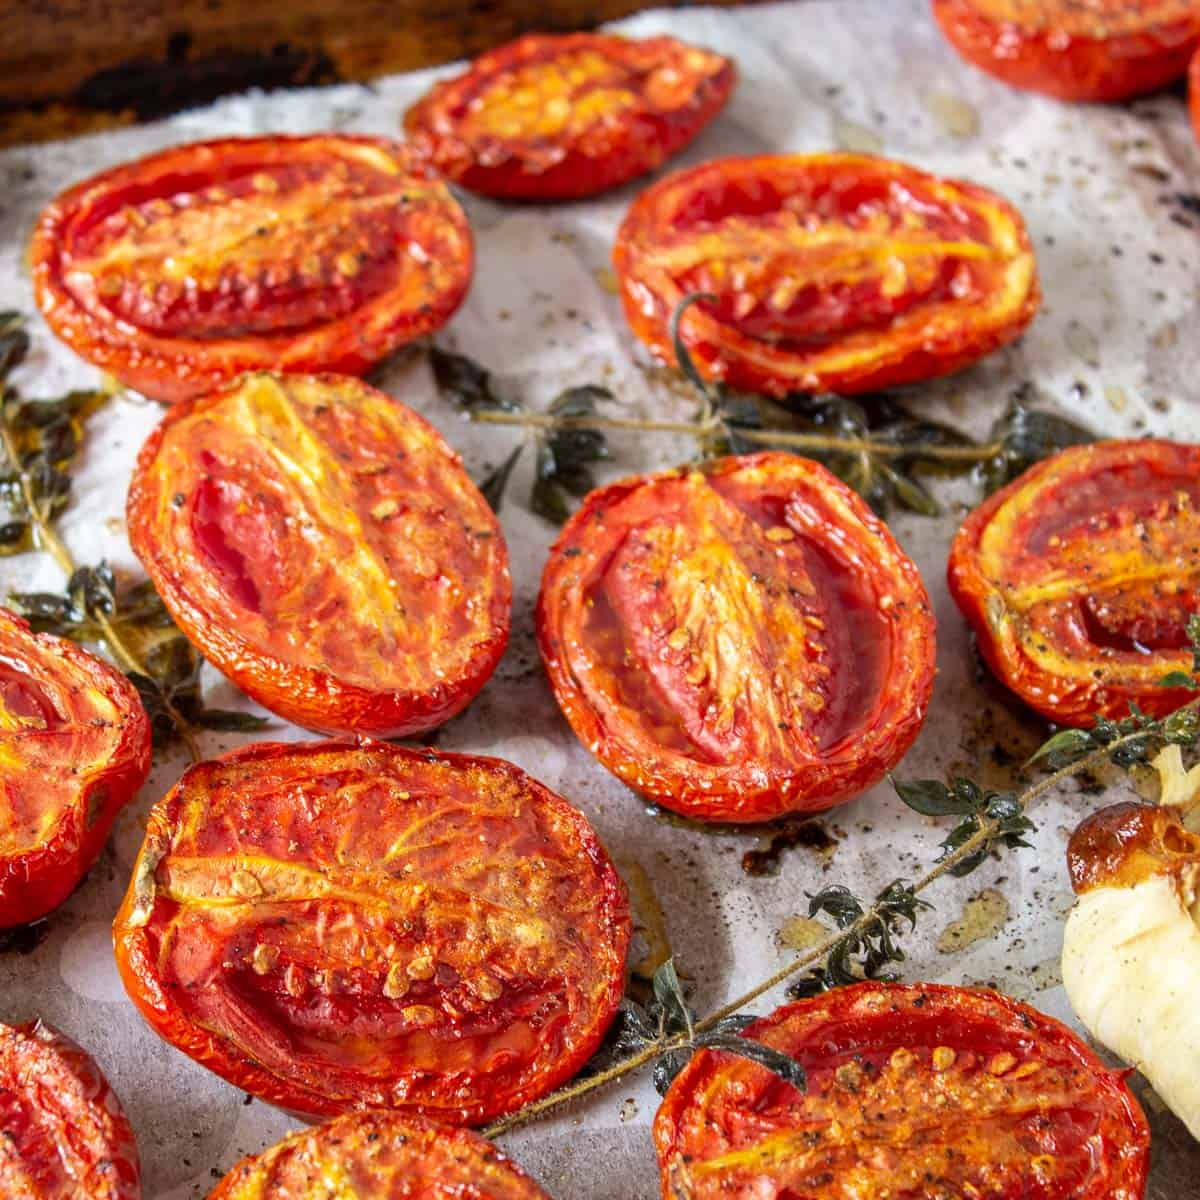 Oven roasted tomatoes with fresh herbs and garlic on a roasting pan.